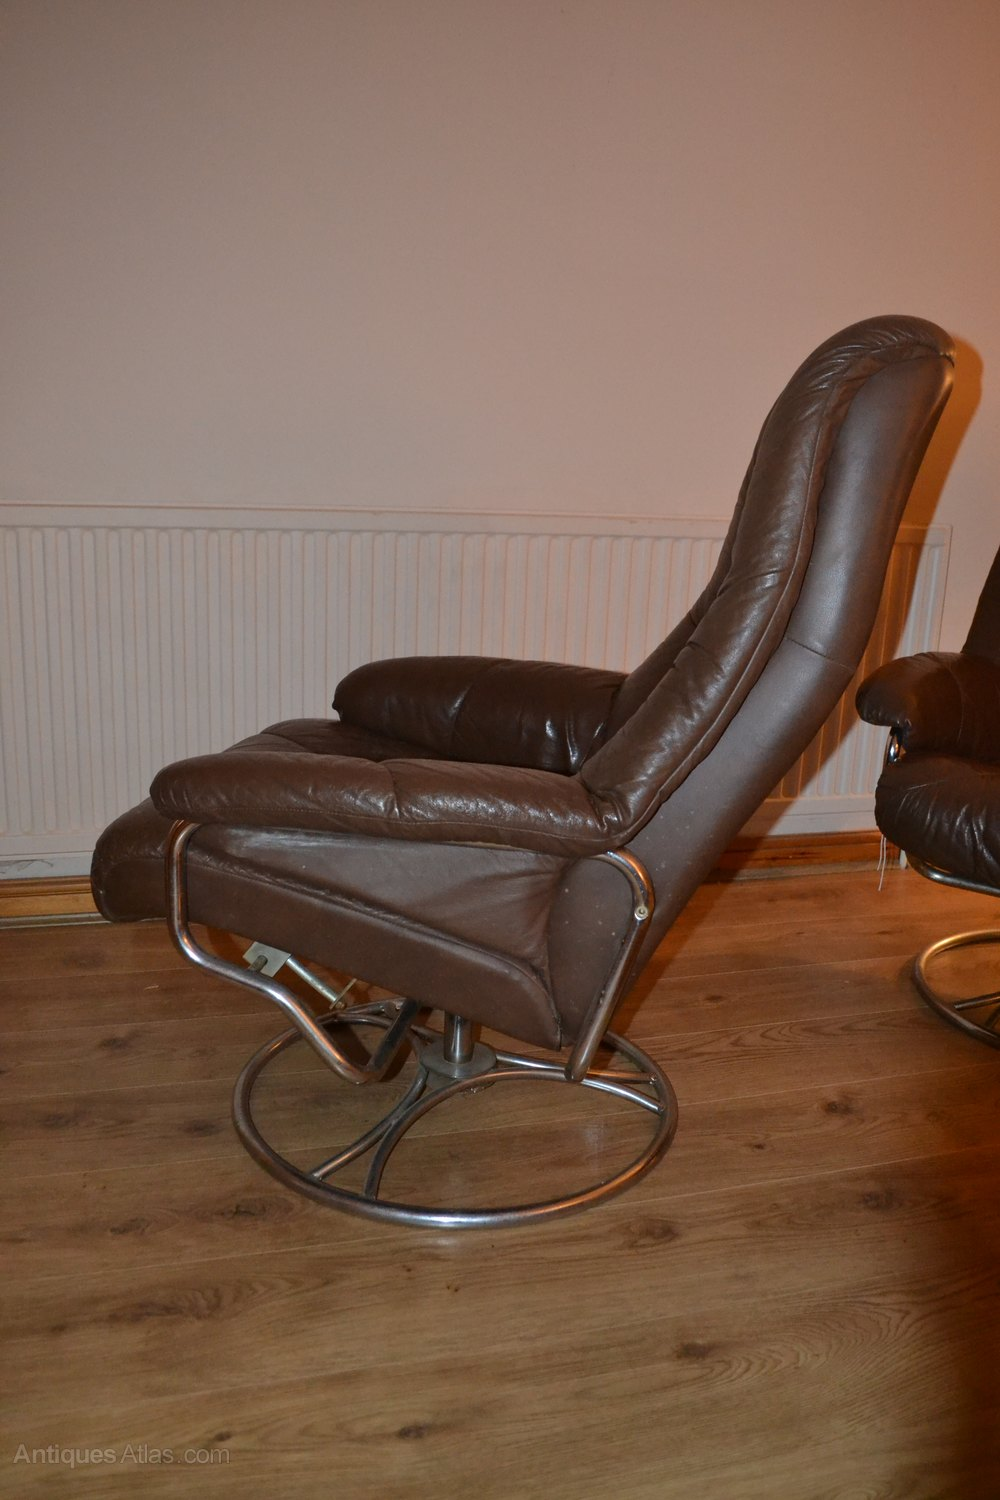 Antiques Atlas Retro Swedish Leather Swivel Chairs And